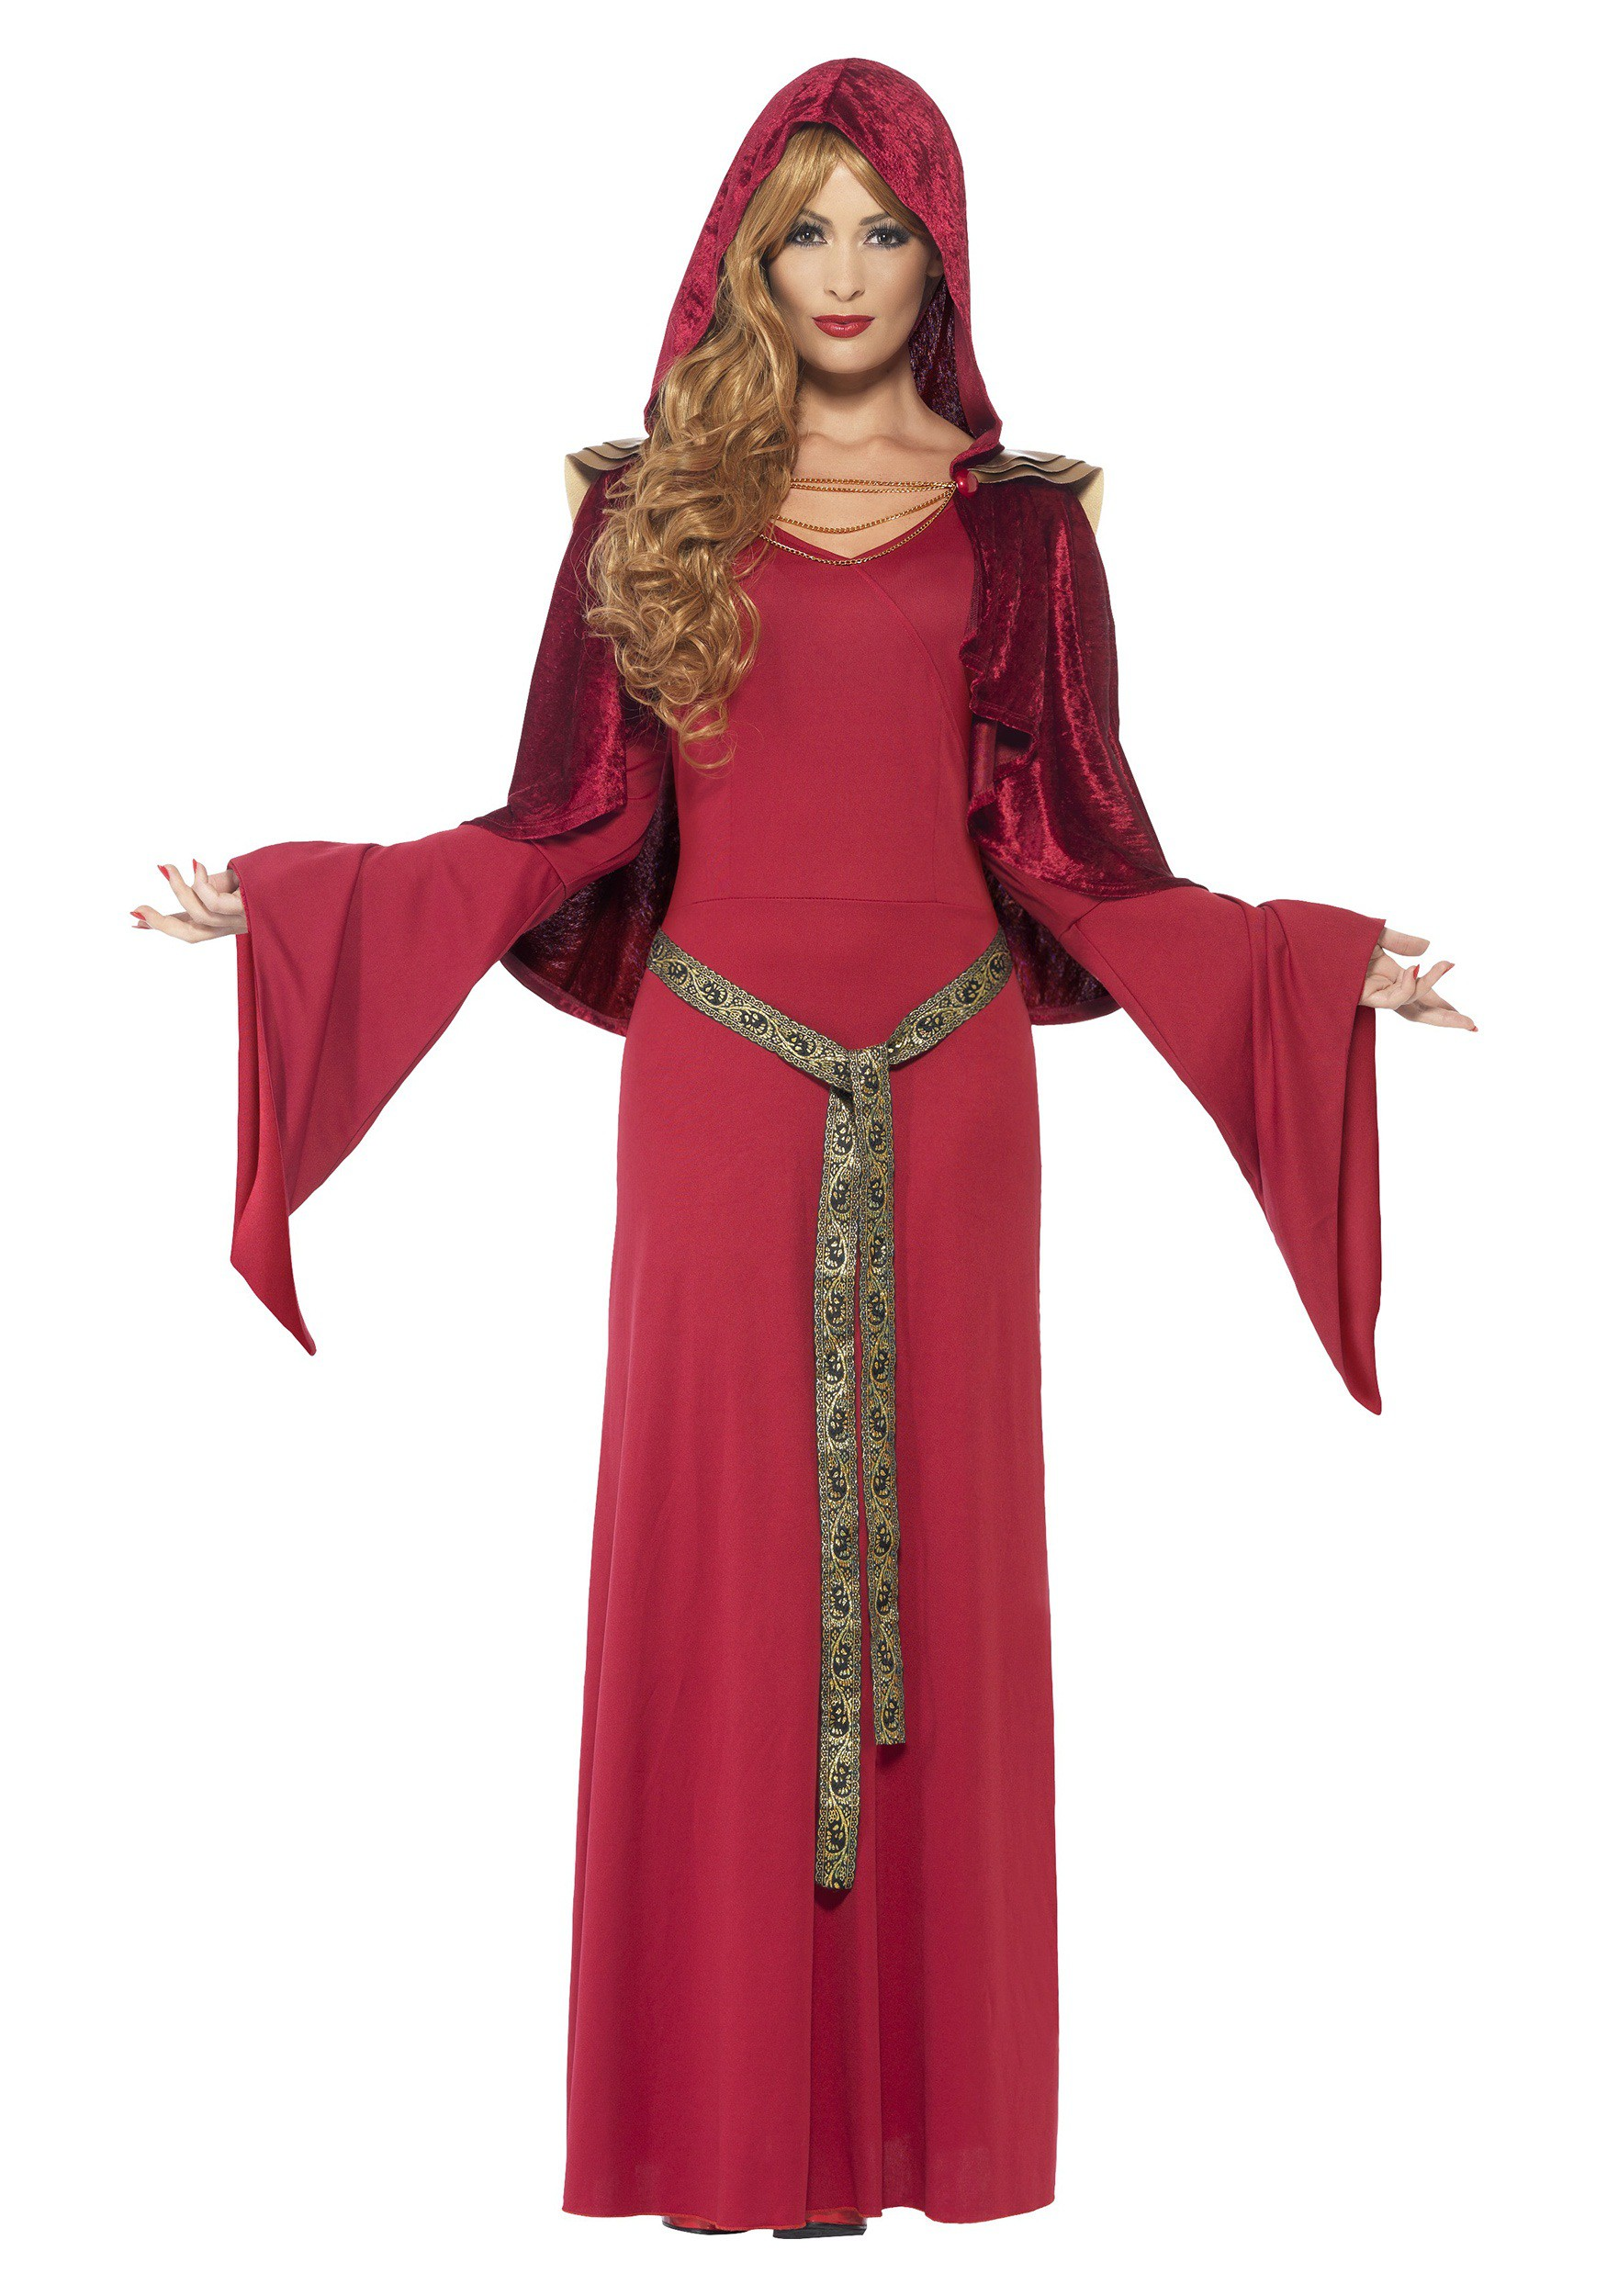 Image result for high priestess costume